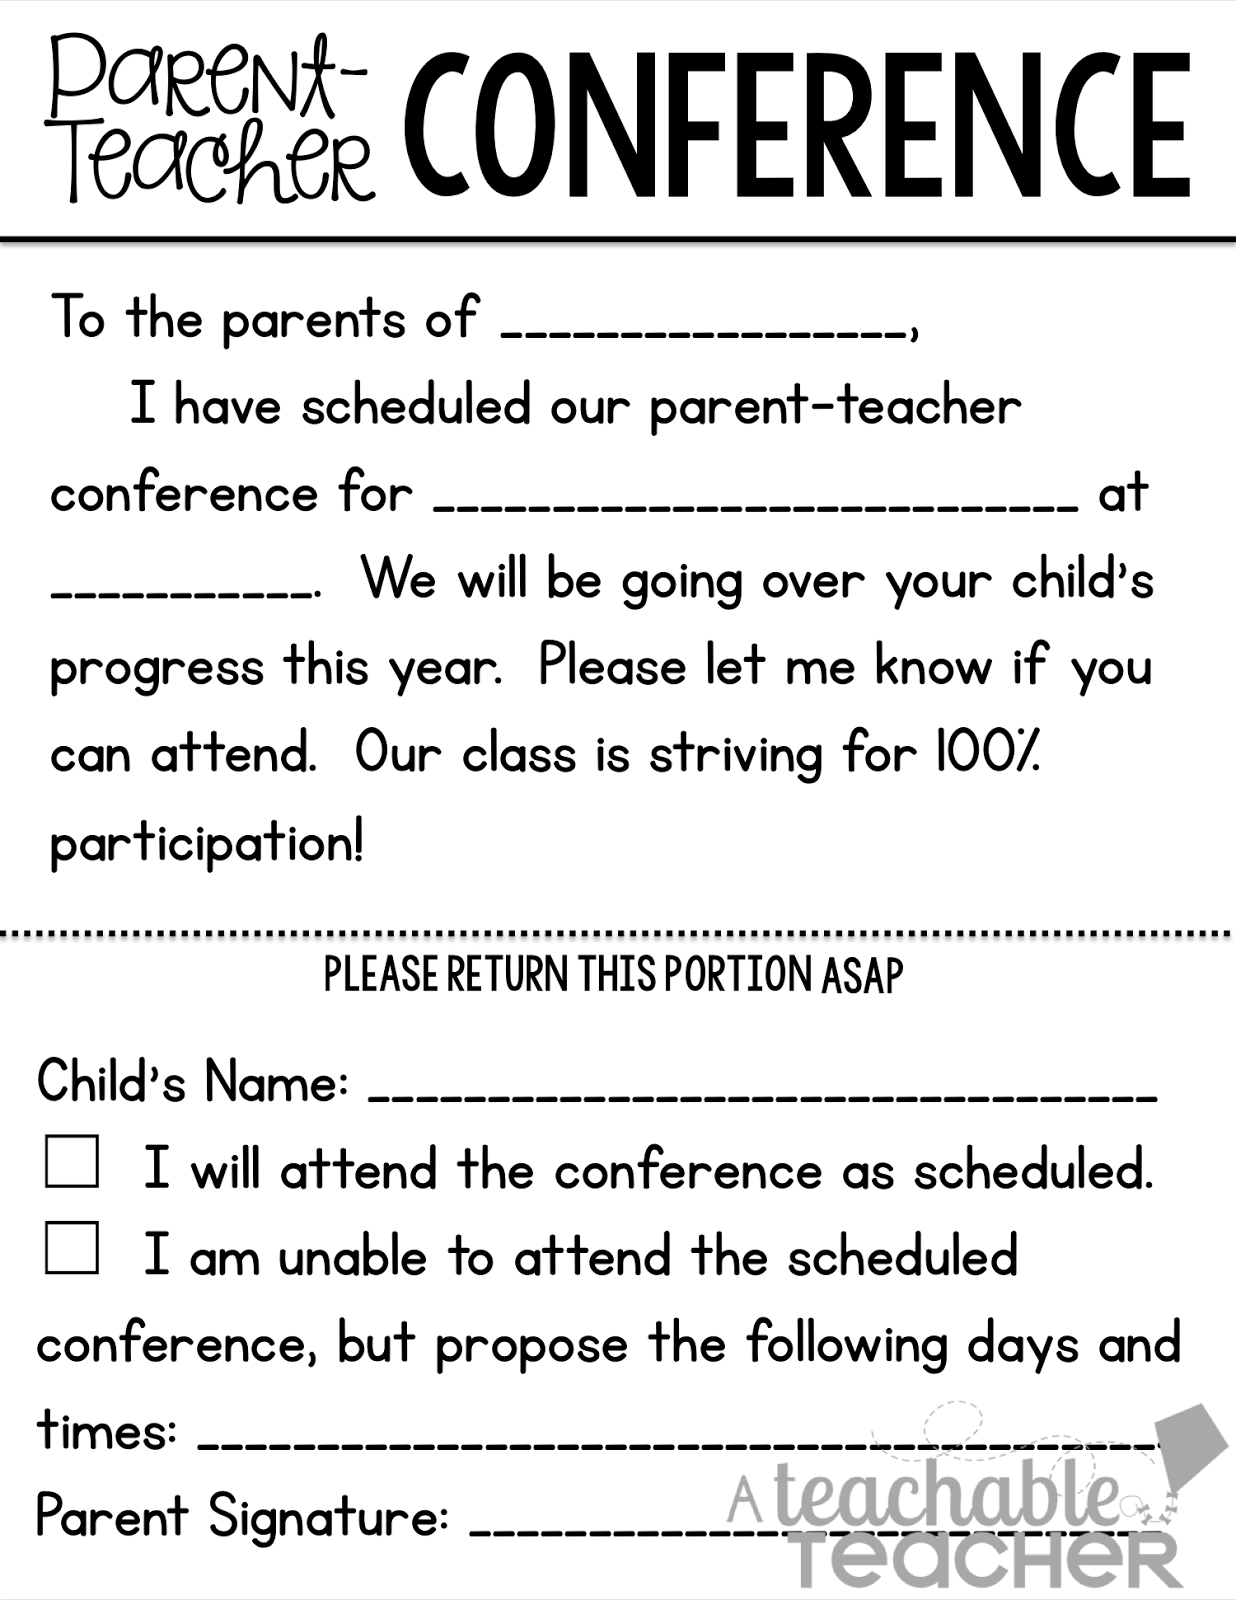 A Teachable Teacher ParentTeacher Conference Tips And Freebies